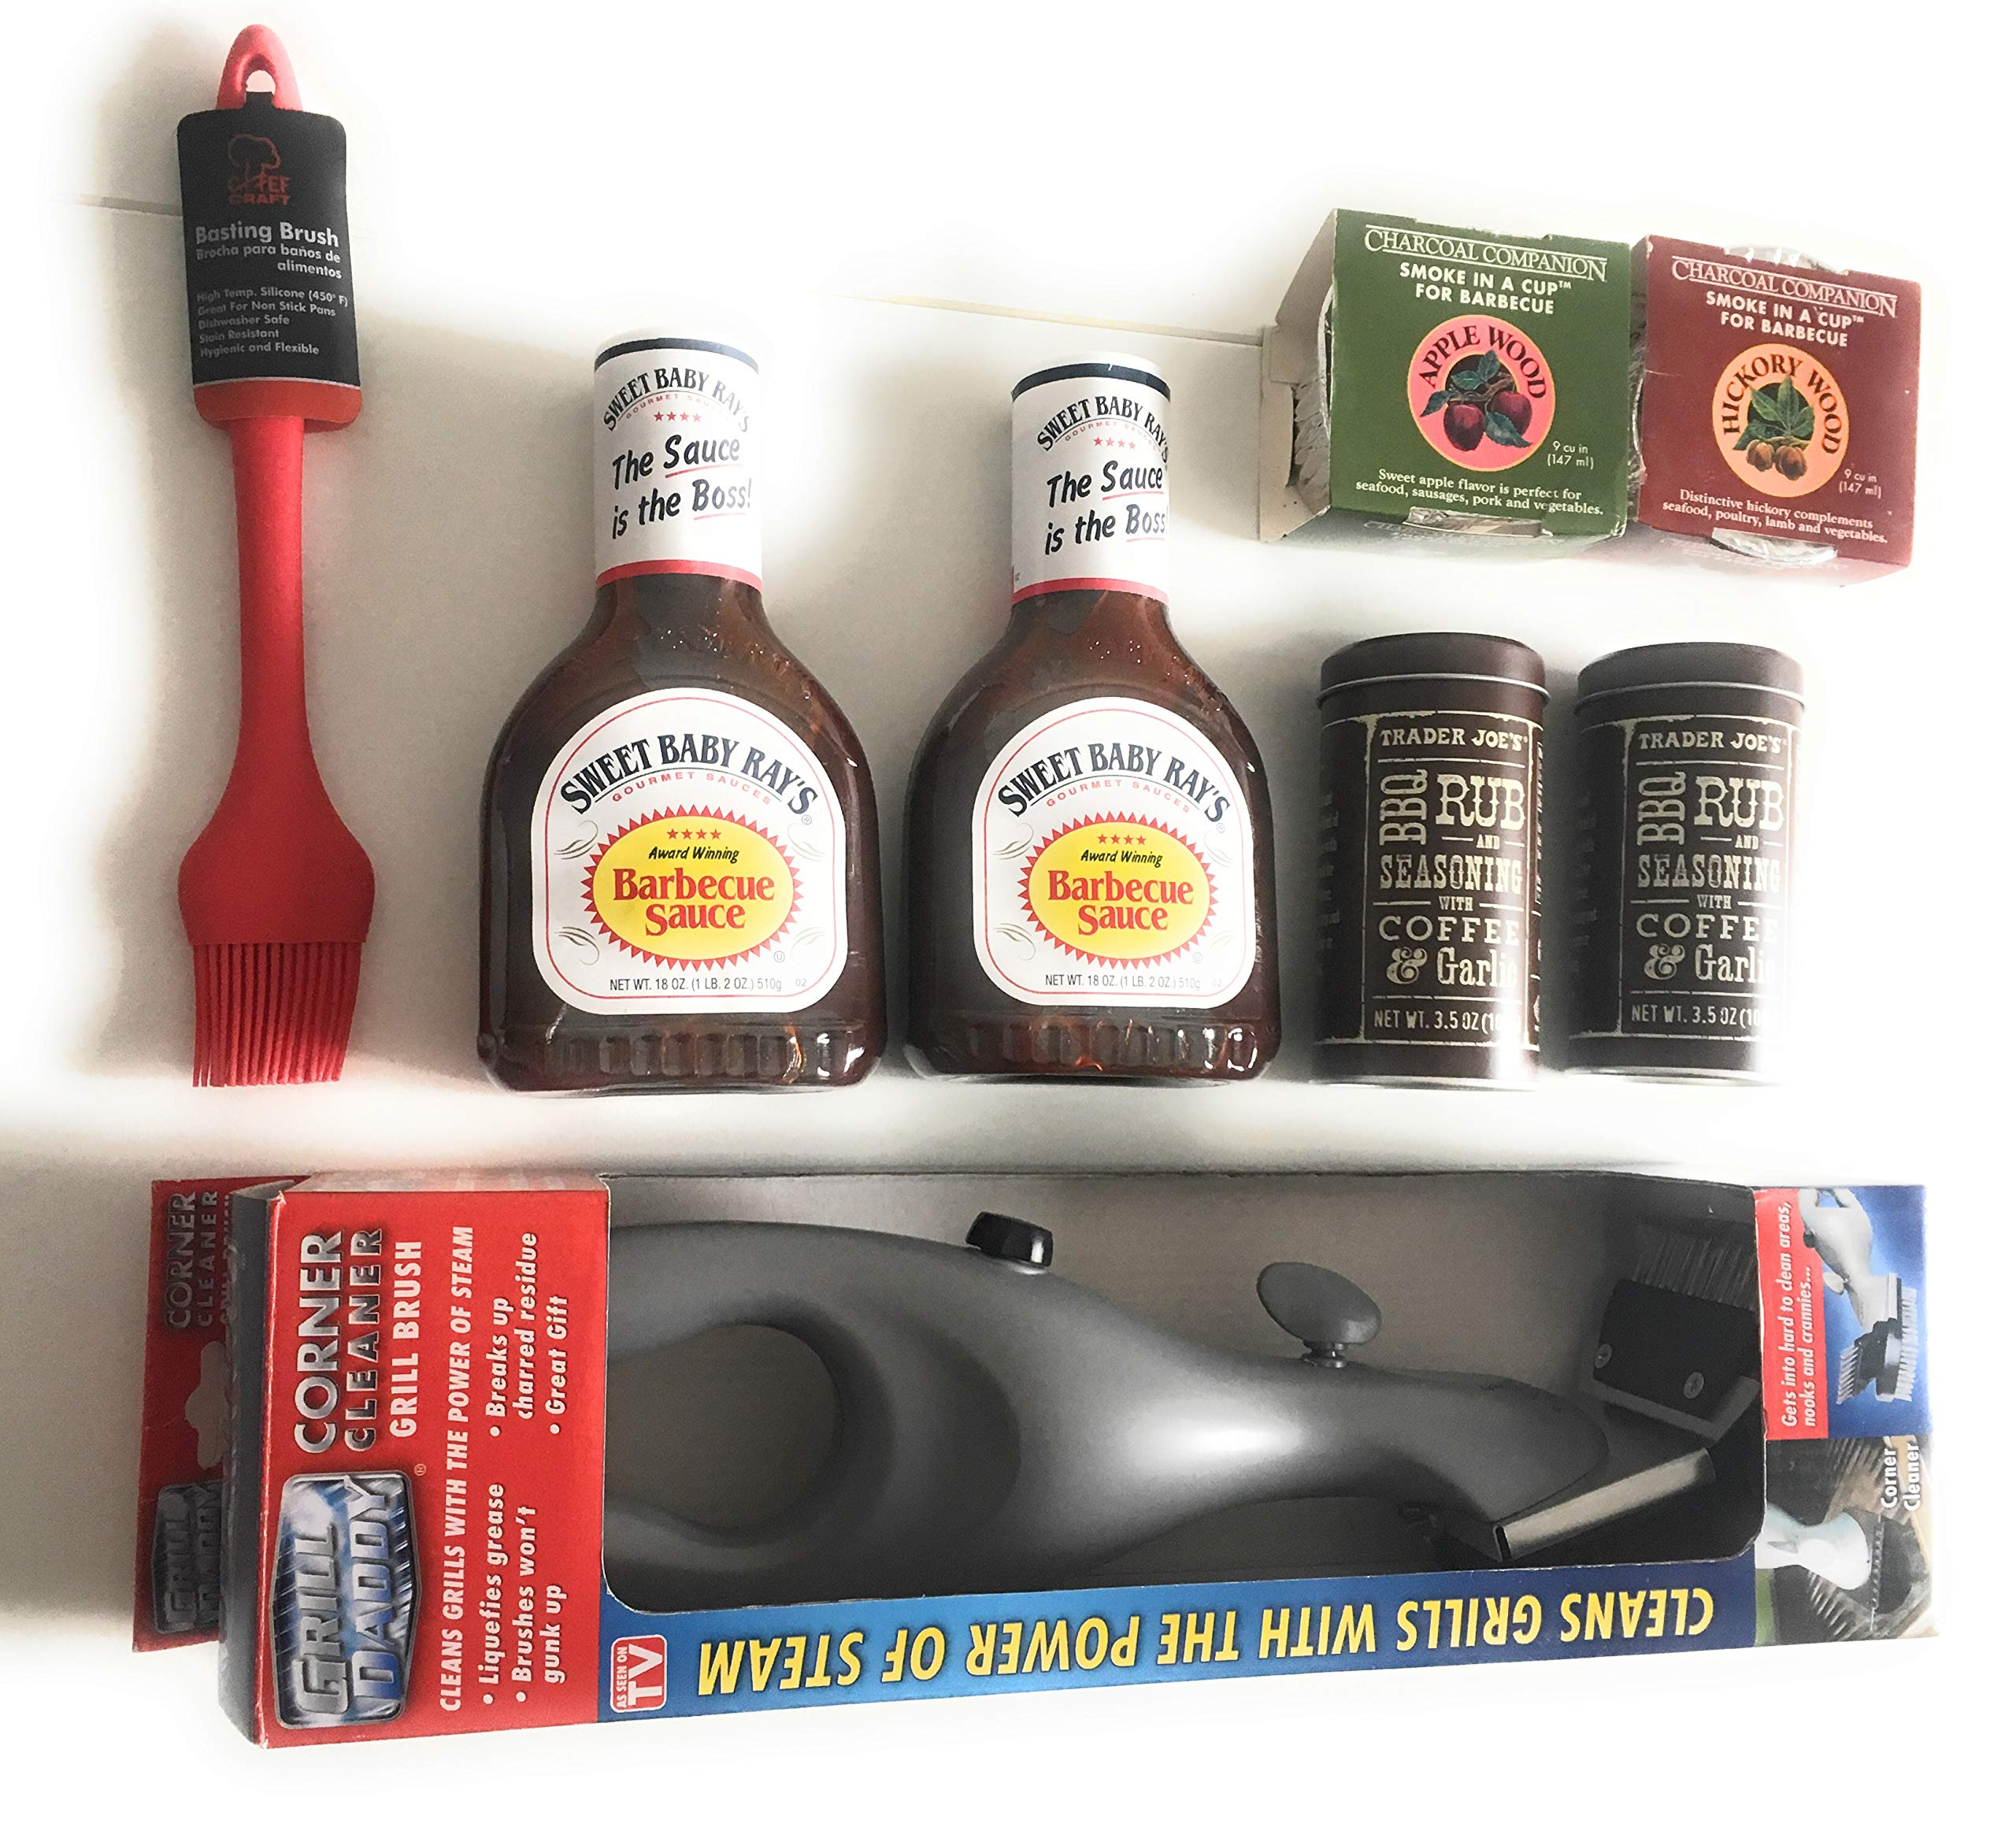 Summertime BBQ Gift Bundle - Featuring Coffee Rub Seasoning | Grill Daddy Steam Cleaning Brush + Scraper | Hickory + Apple Wood Smoke in a Cup | Sweet Baby Ray's BBQ Sauce with Silicone Basting Brush by Grill Daddy and Others